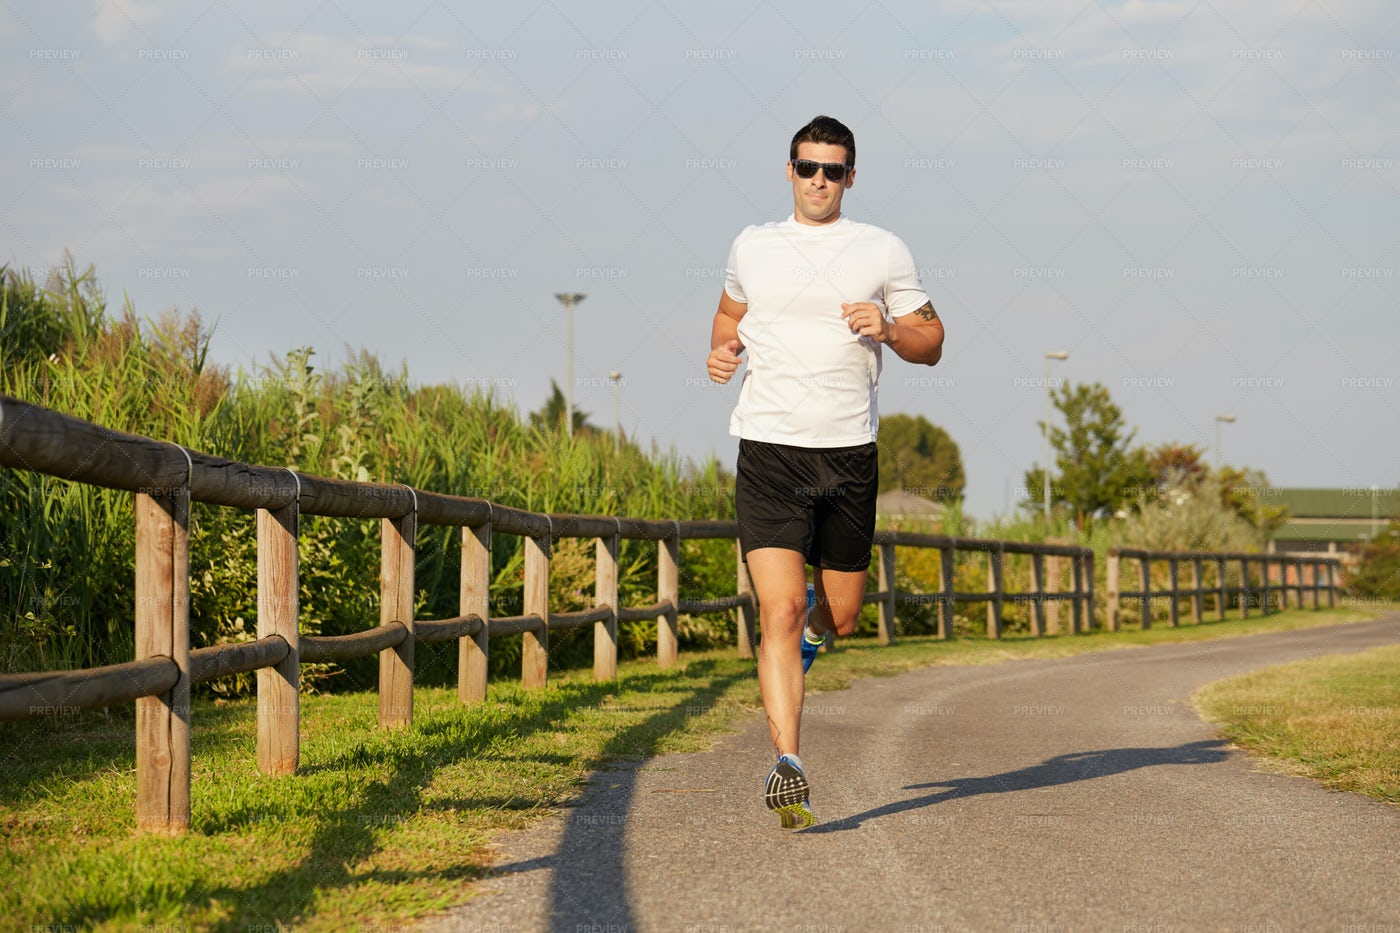 Training In Summer Day: Stock Photos